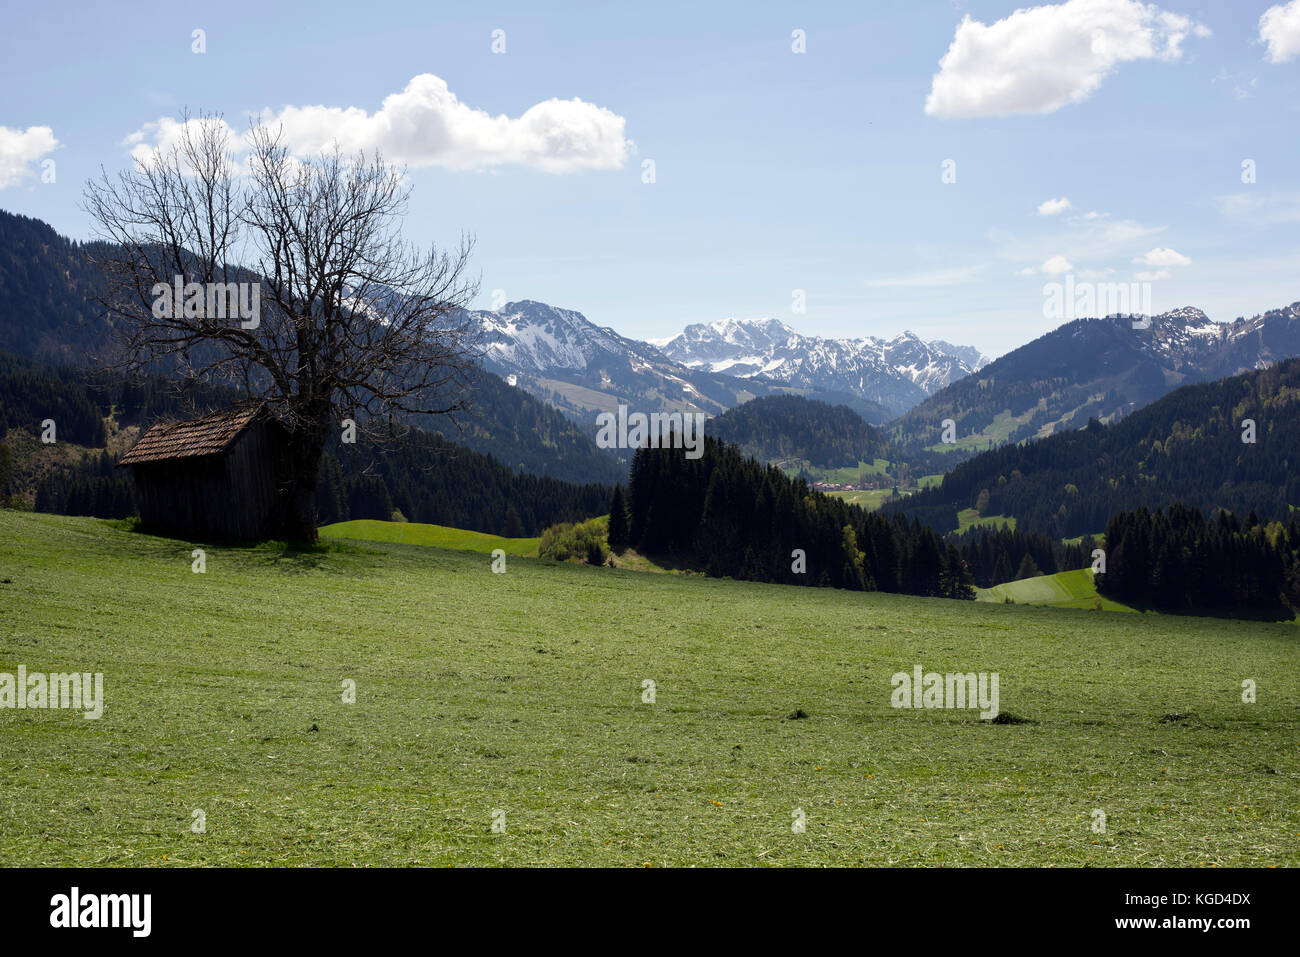 Freshly mowed grass and view of Allgäu Alps in the mountain exclave quadripoint border area of Jungholz, Tirol, - Stock Image